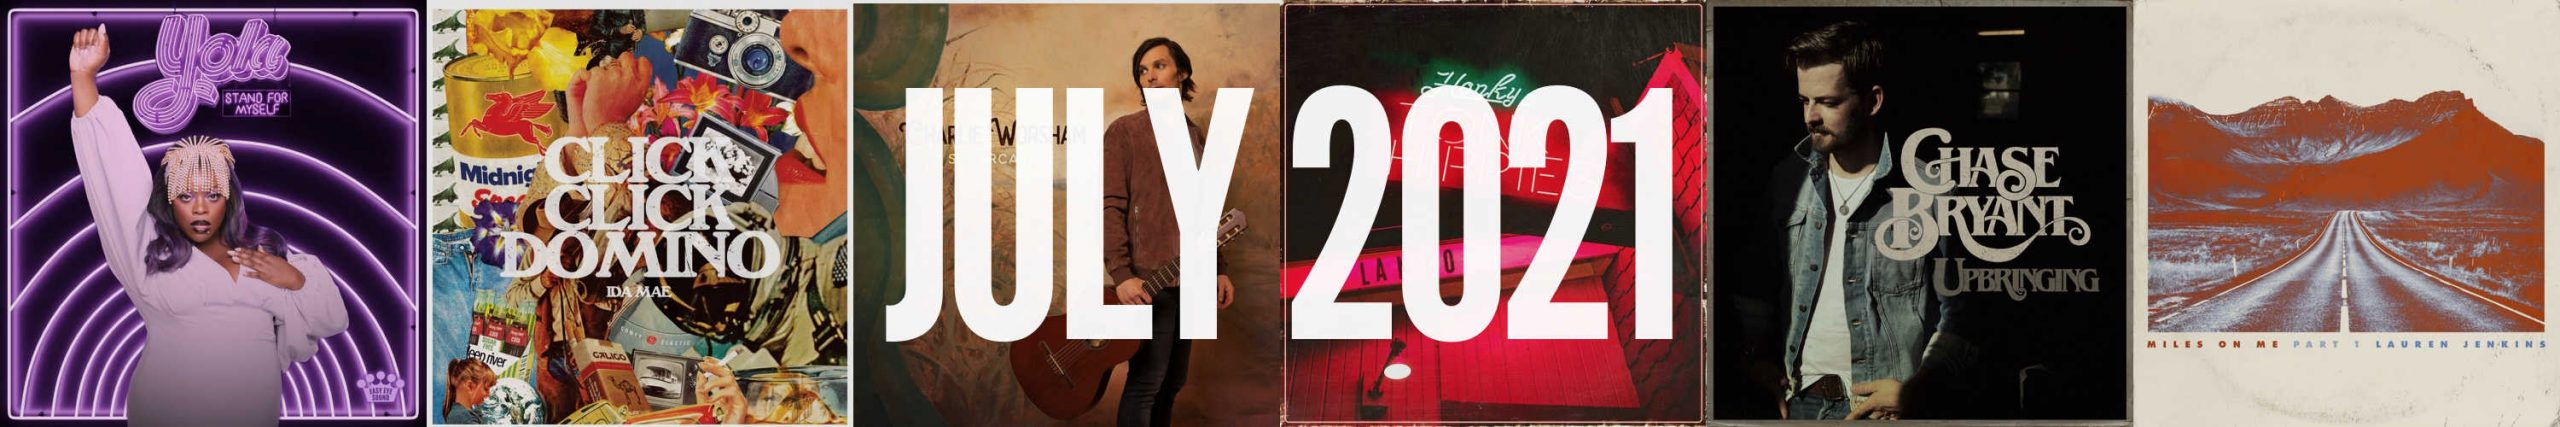 July 2021 New Country Album Releases